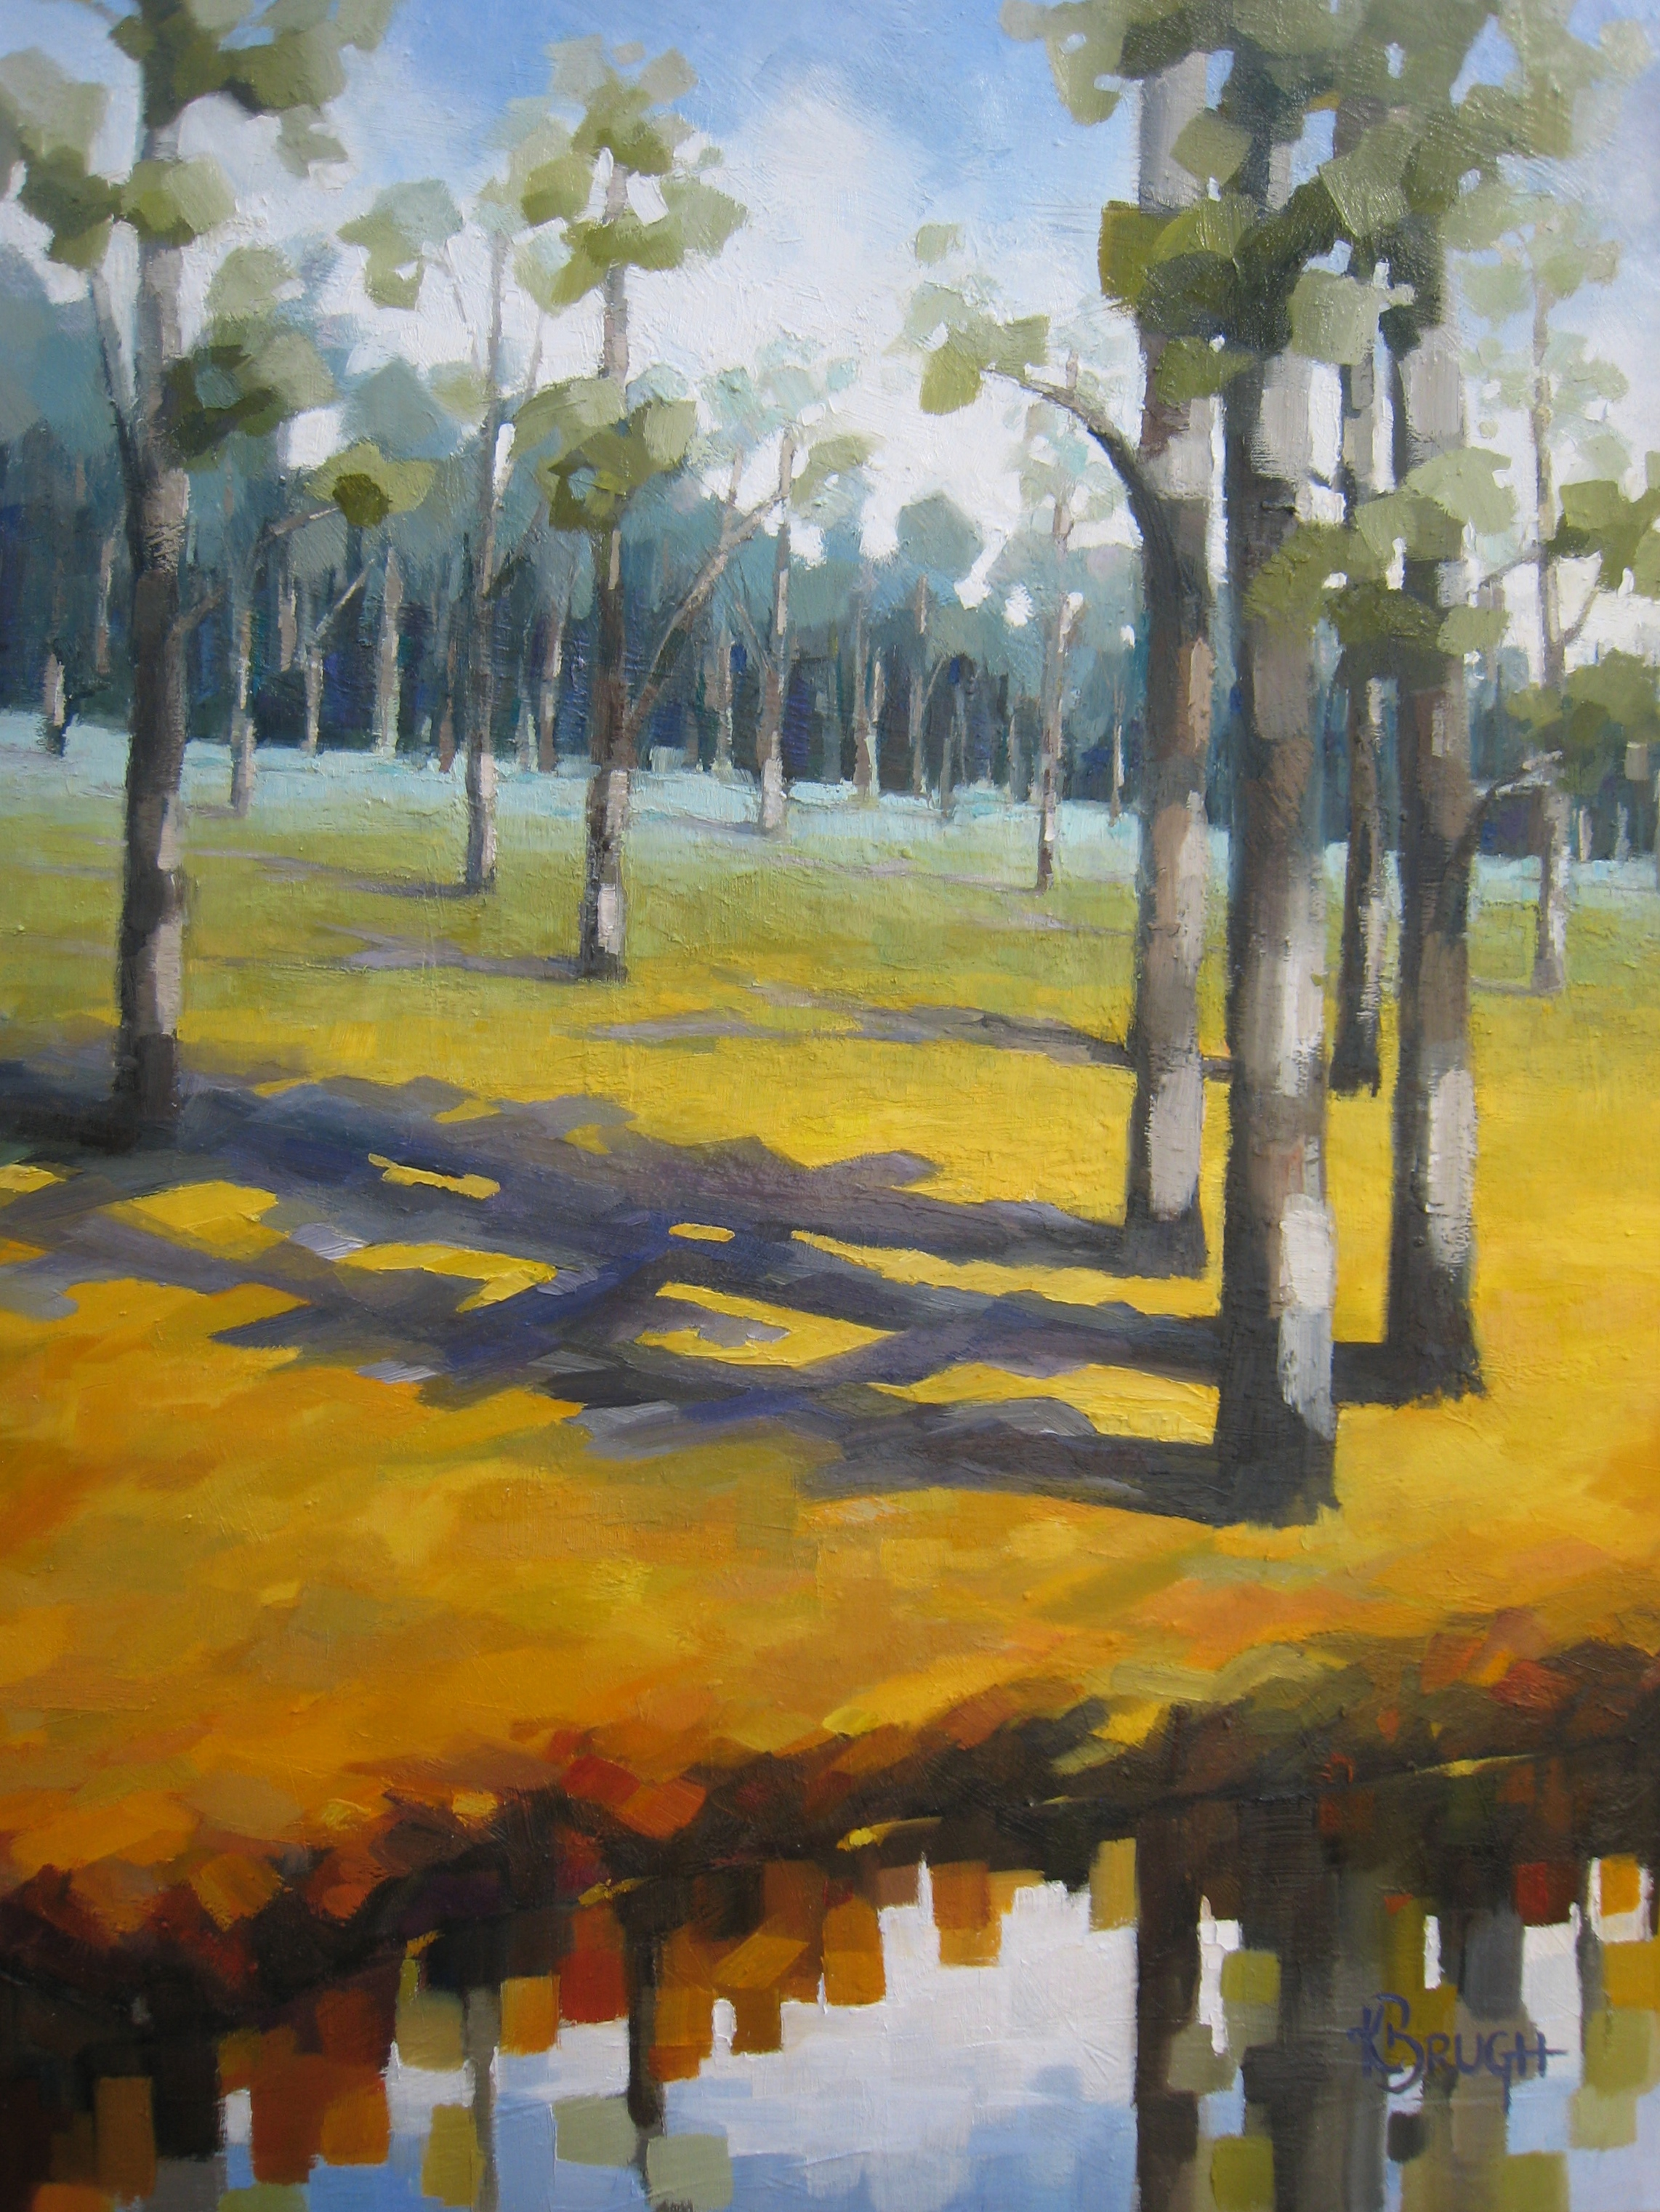 Kelley Brugh_A Walk in the Woods_30x40, Oil on canvas.jpg